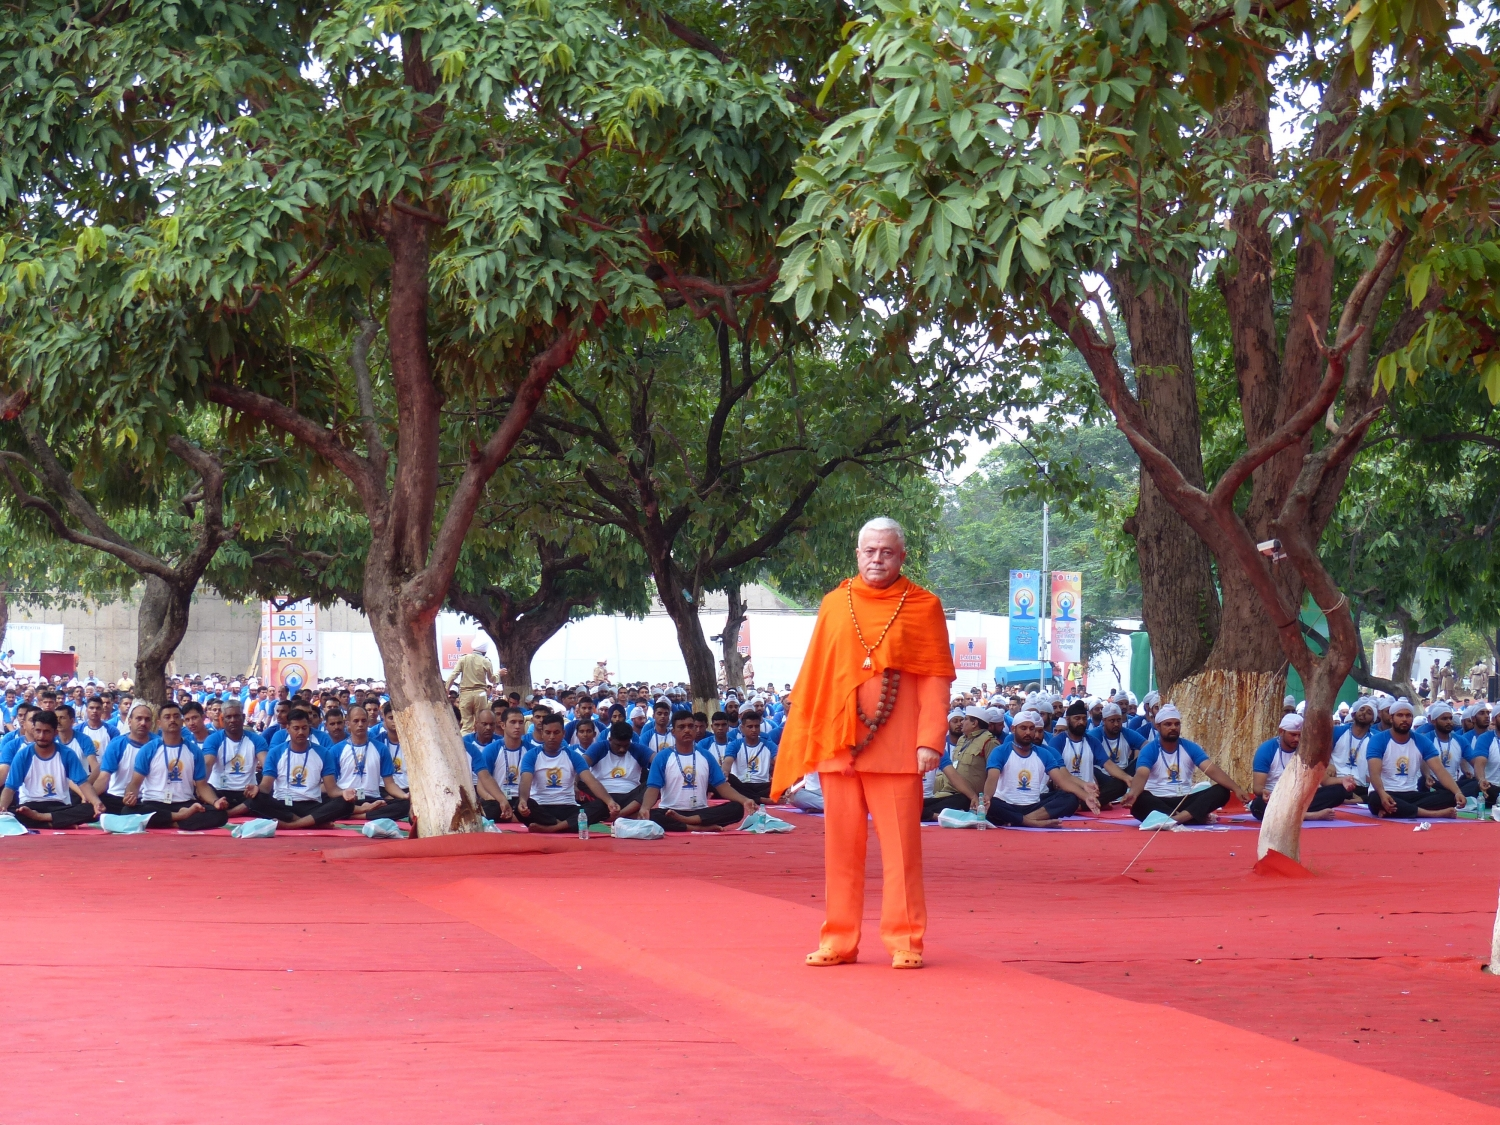 International Day of Yoga / IDY 2016 - Chandigarh, Inde - Dirigé par Shrí Narendra Modi